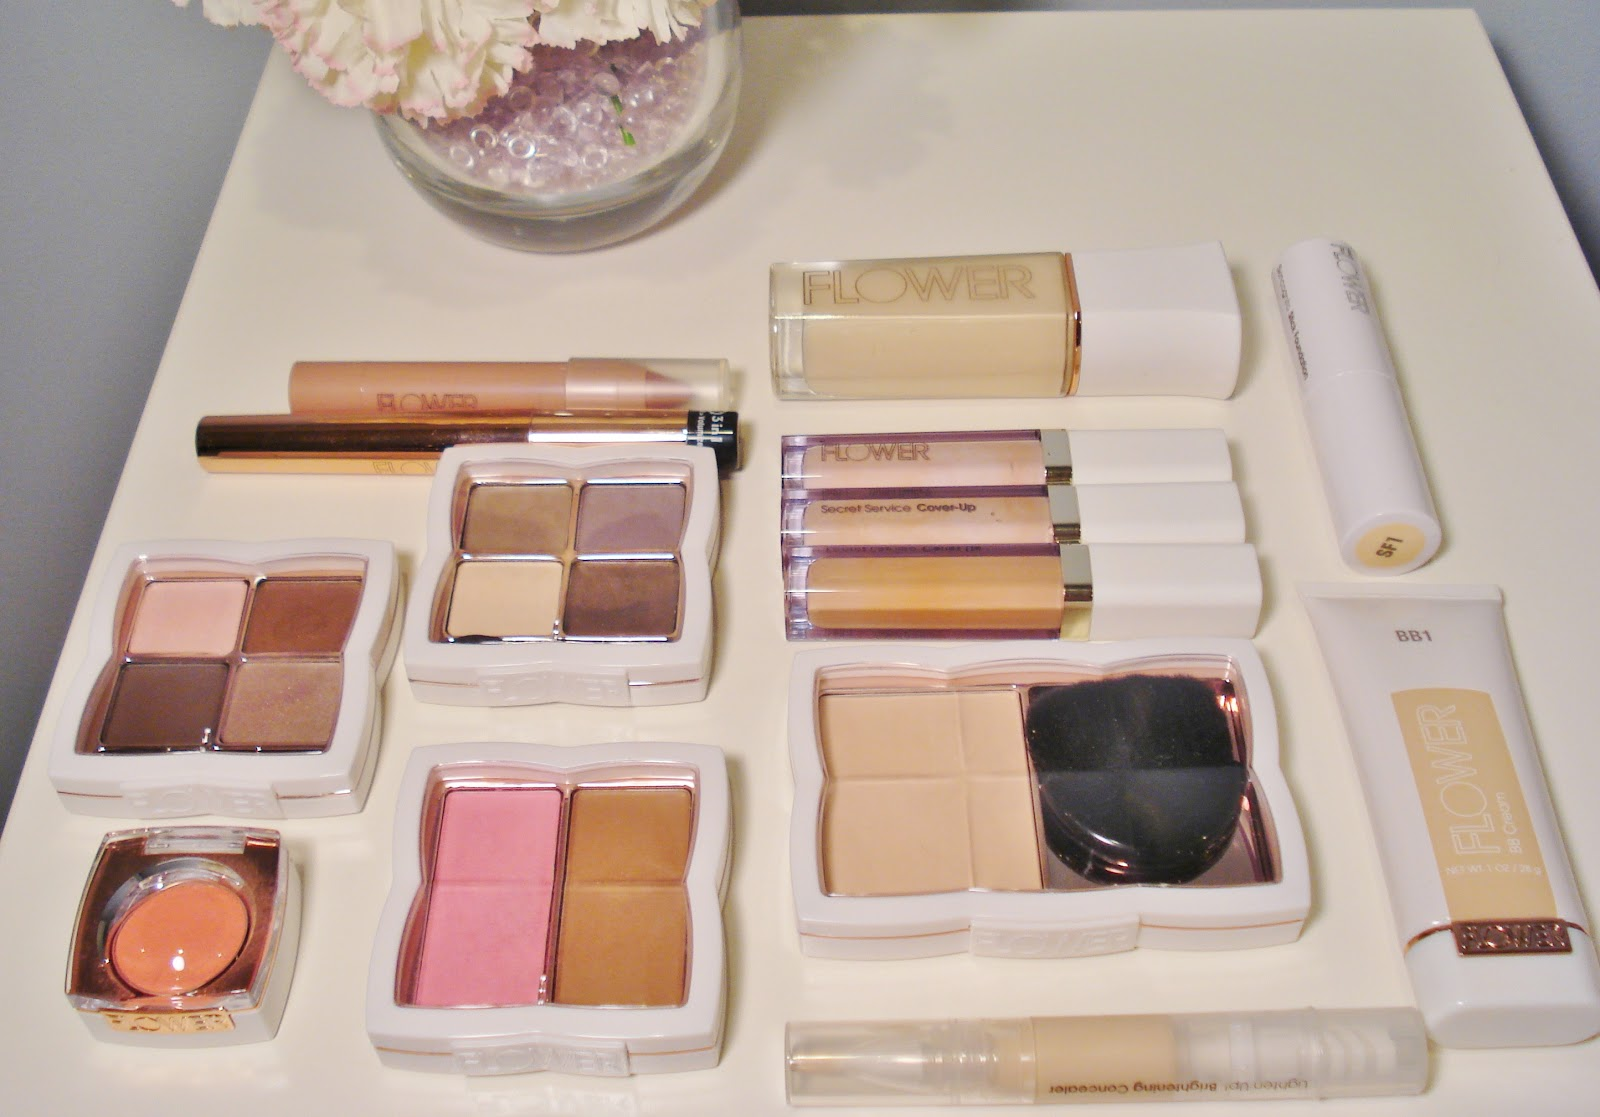 Flower Beauty From Drew Barrymore First Impressions Makeupwednesday